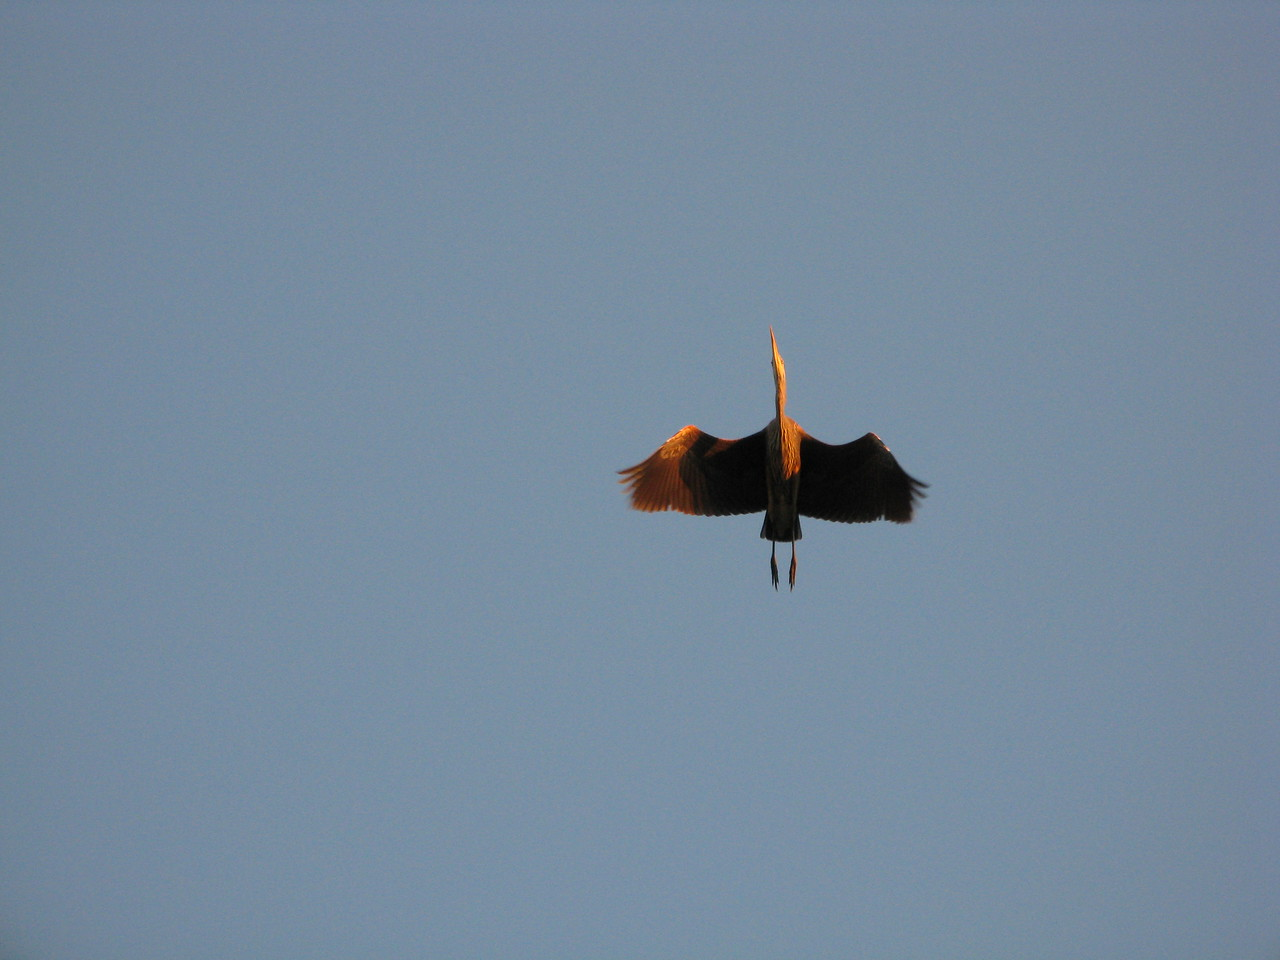 The heron is flying almost directly above us.